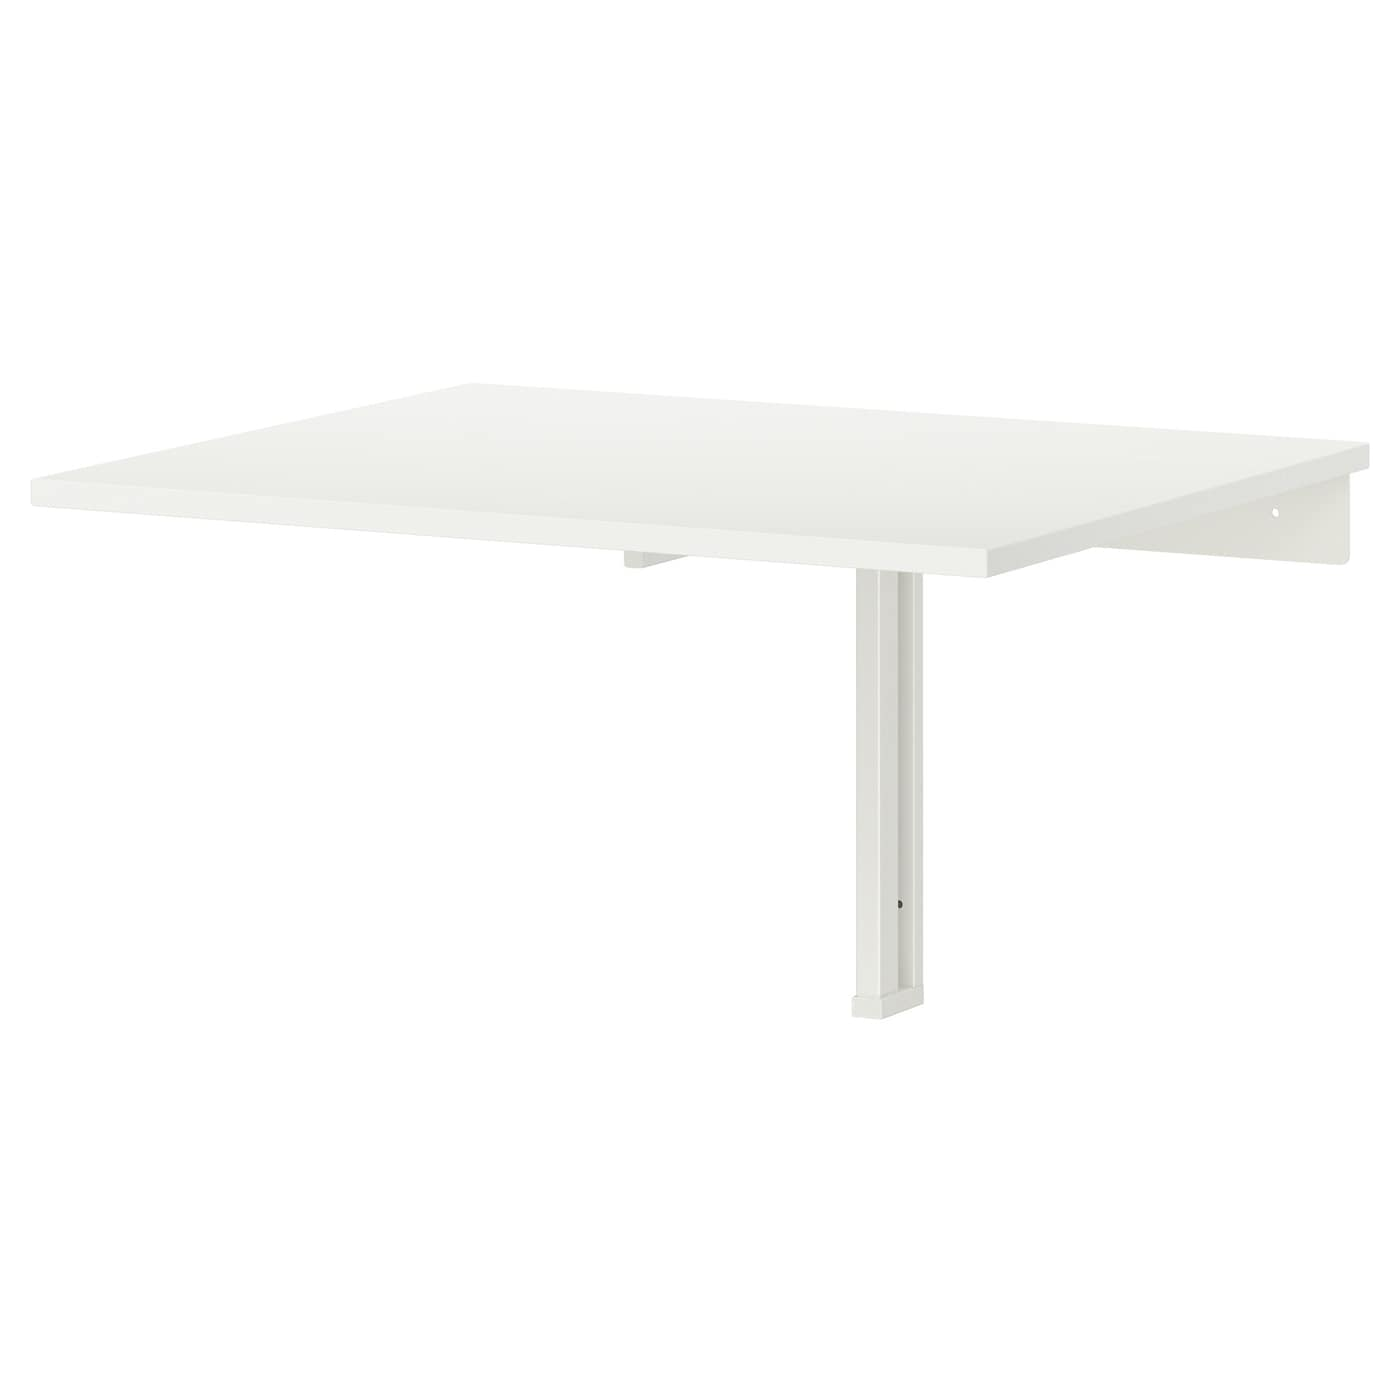 Ikea Norberg Wall Mounted Drop Leaf Table